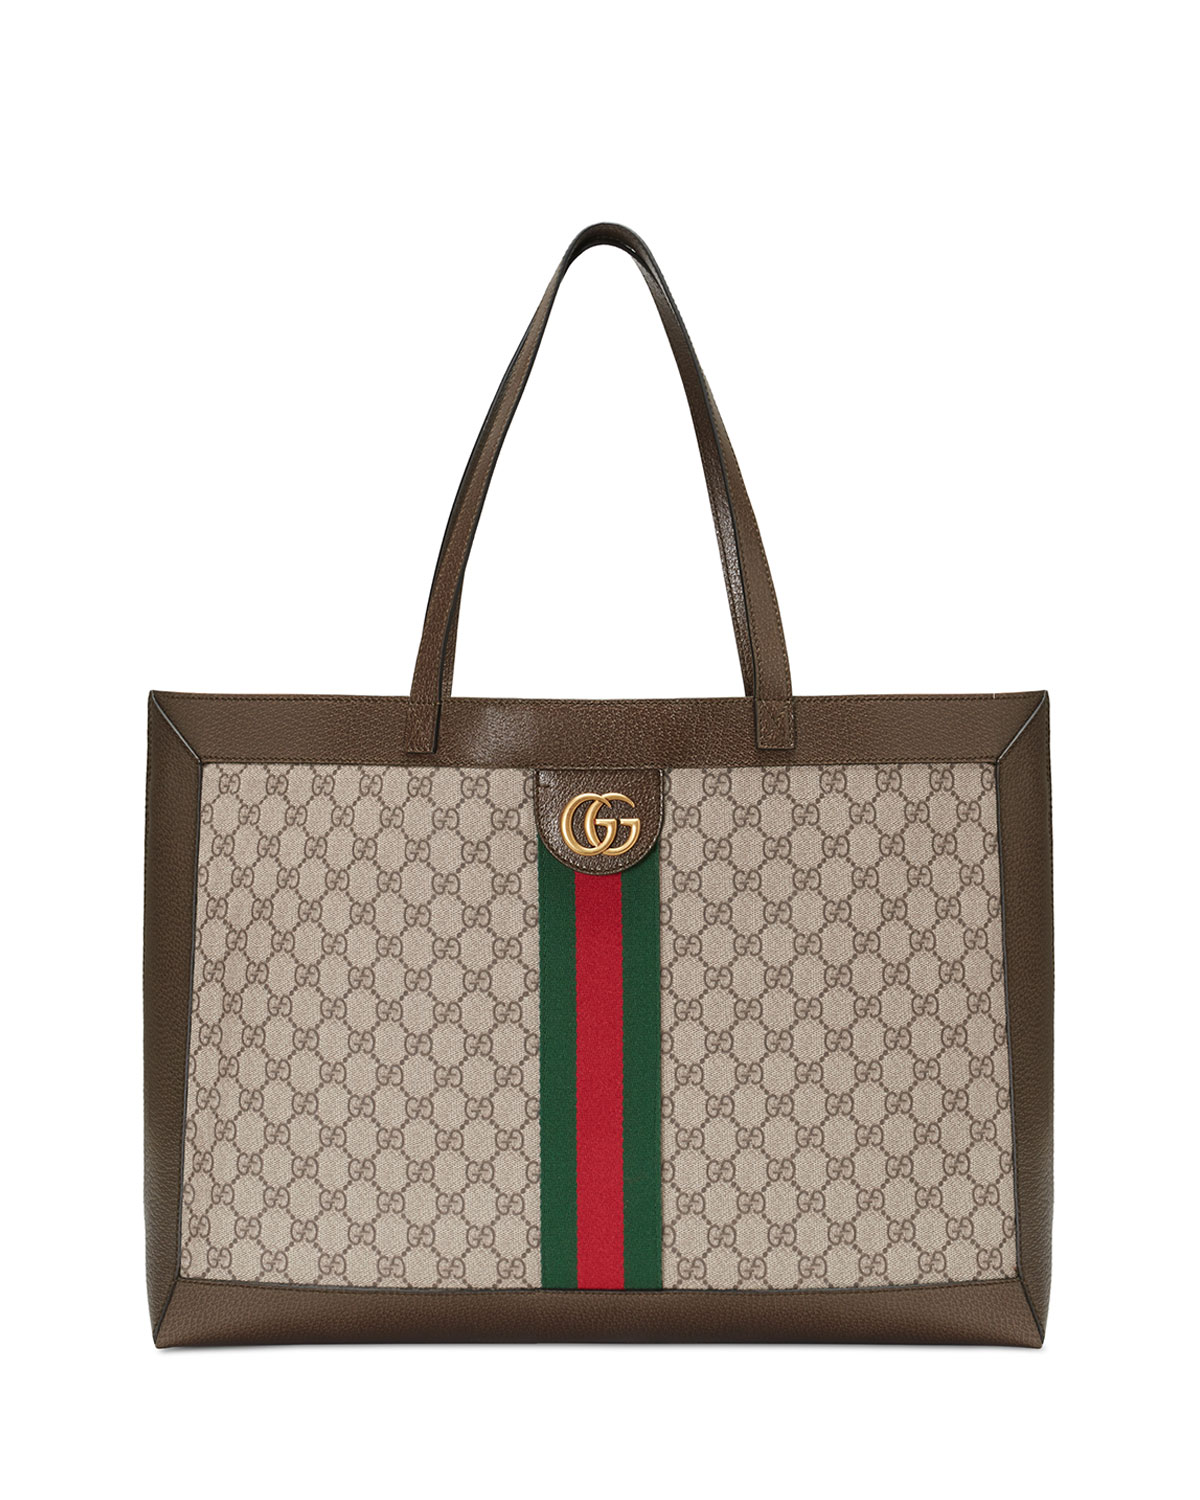 e4bcd02f9fc7 Gucci Ophidia Soft GG Supreme Canvas Tote Bag with Web | Neiman Marcus